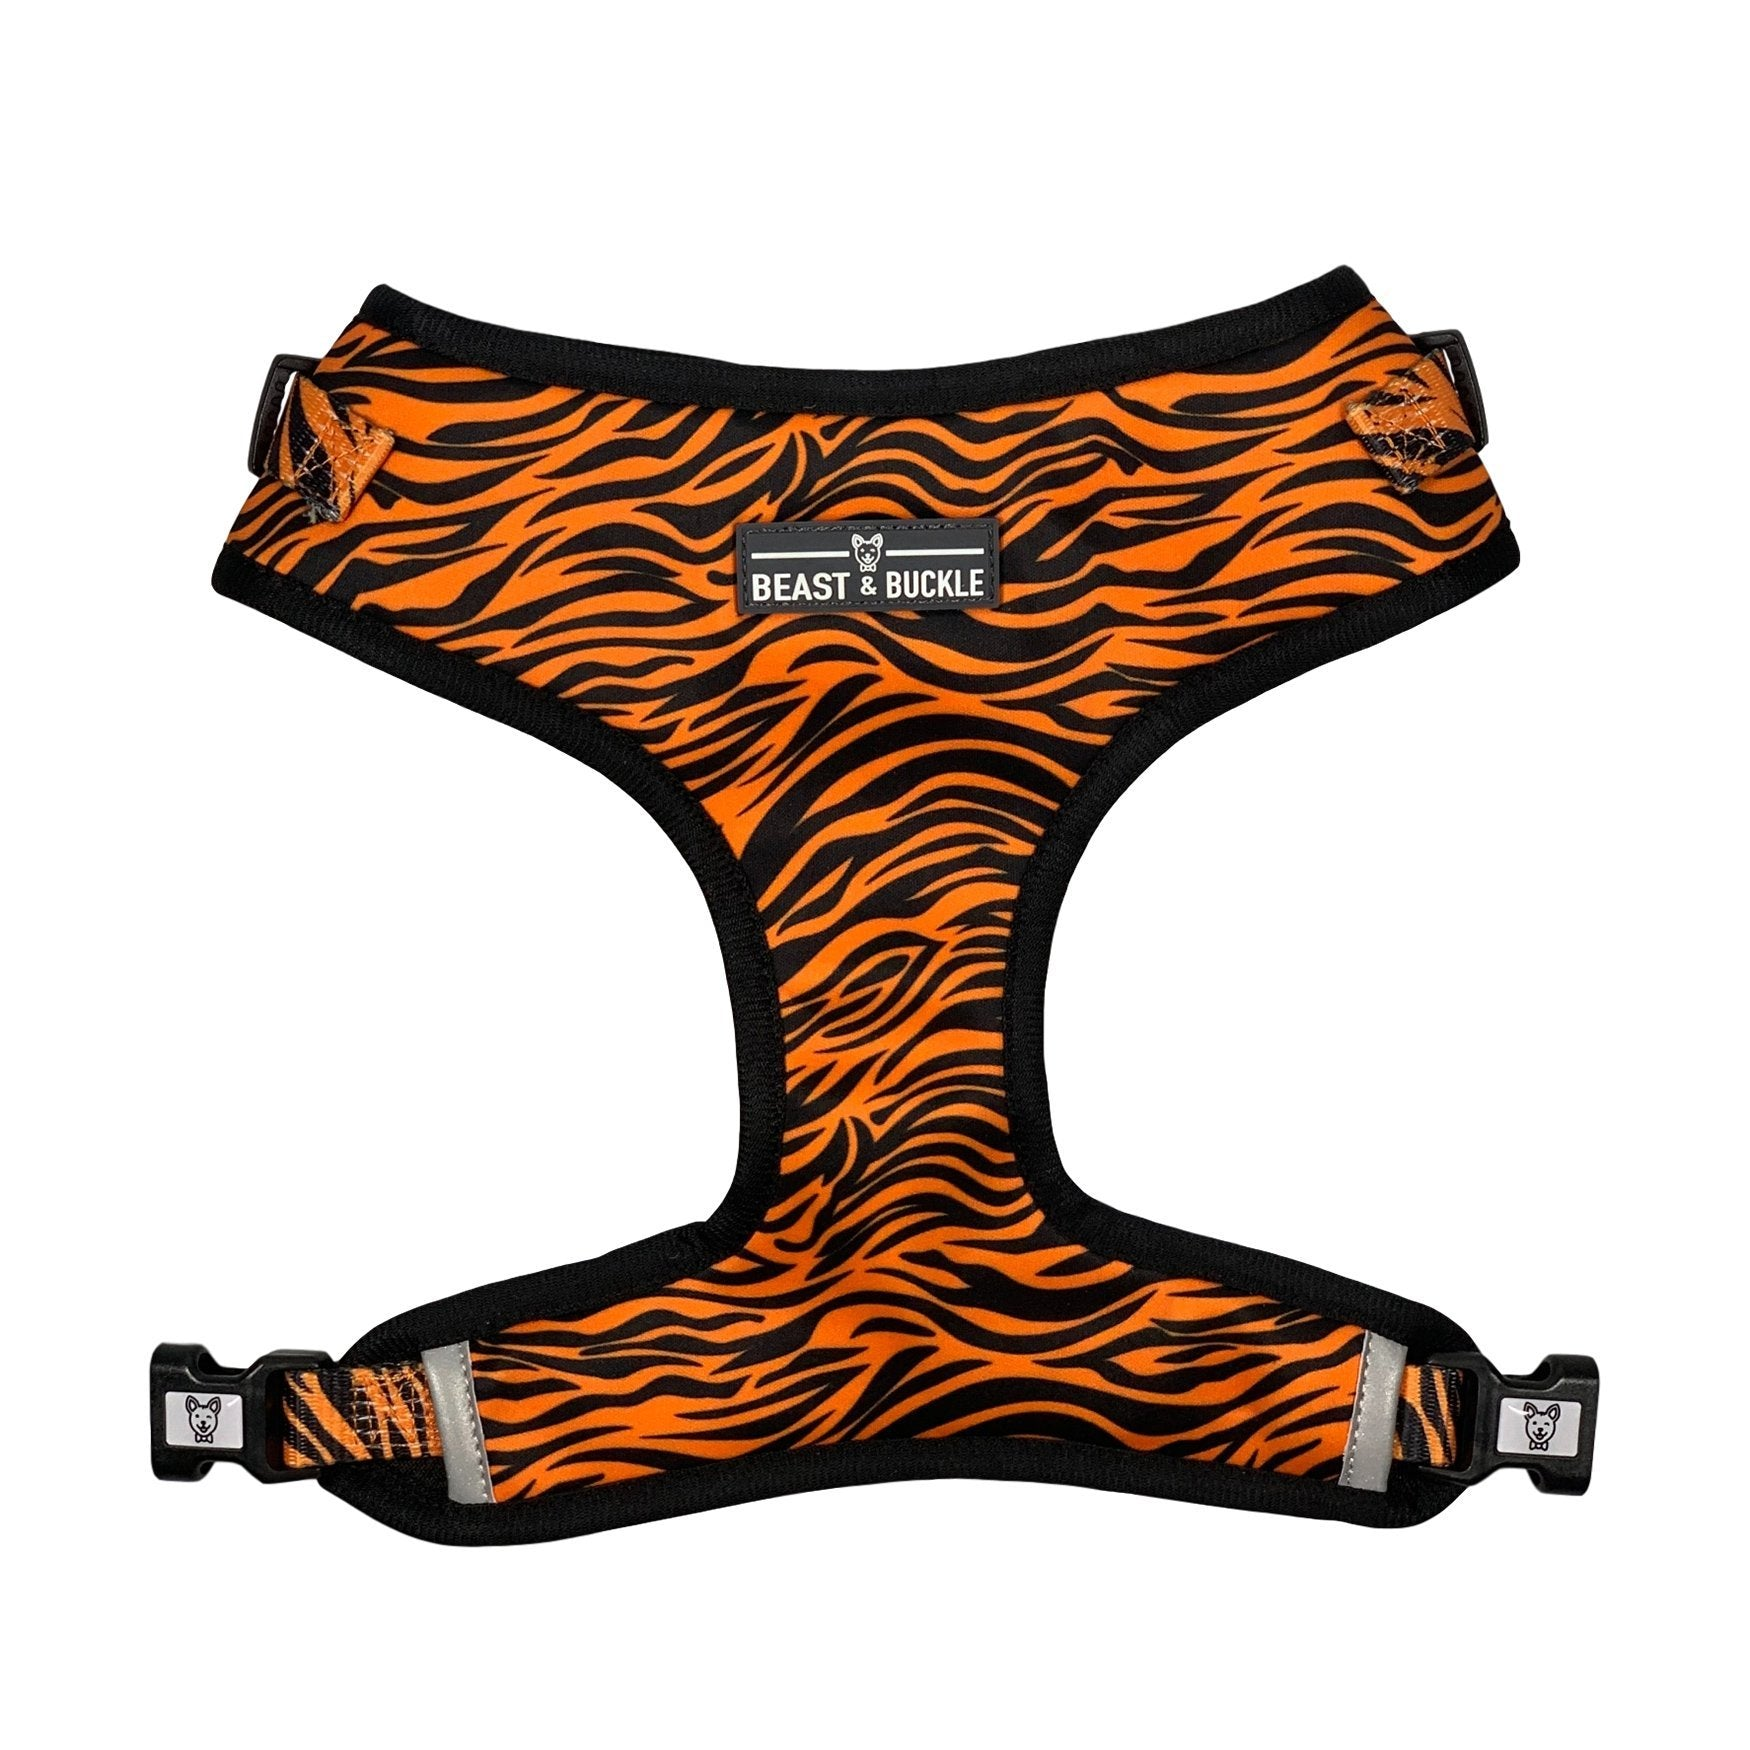 Tiger Adjustable Dog Harness - Beast & Buckle